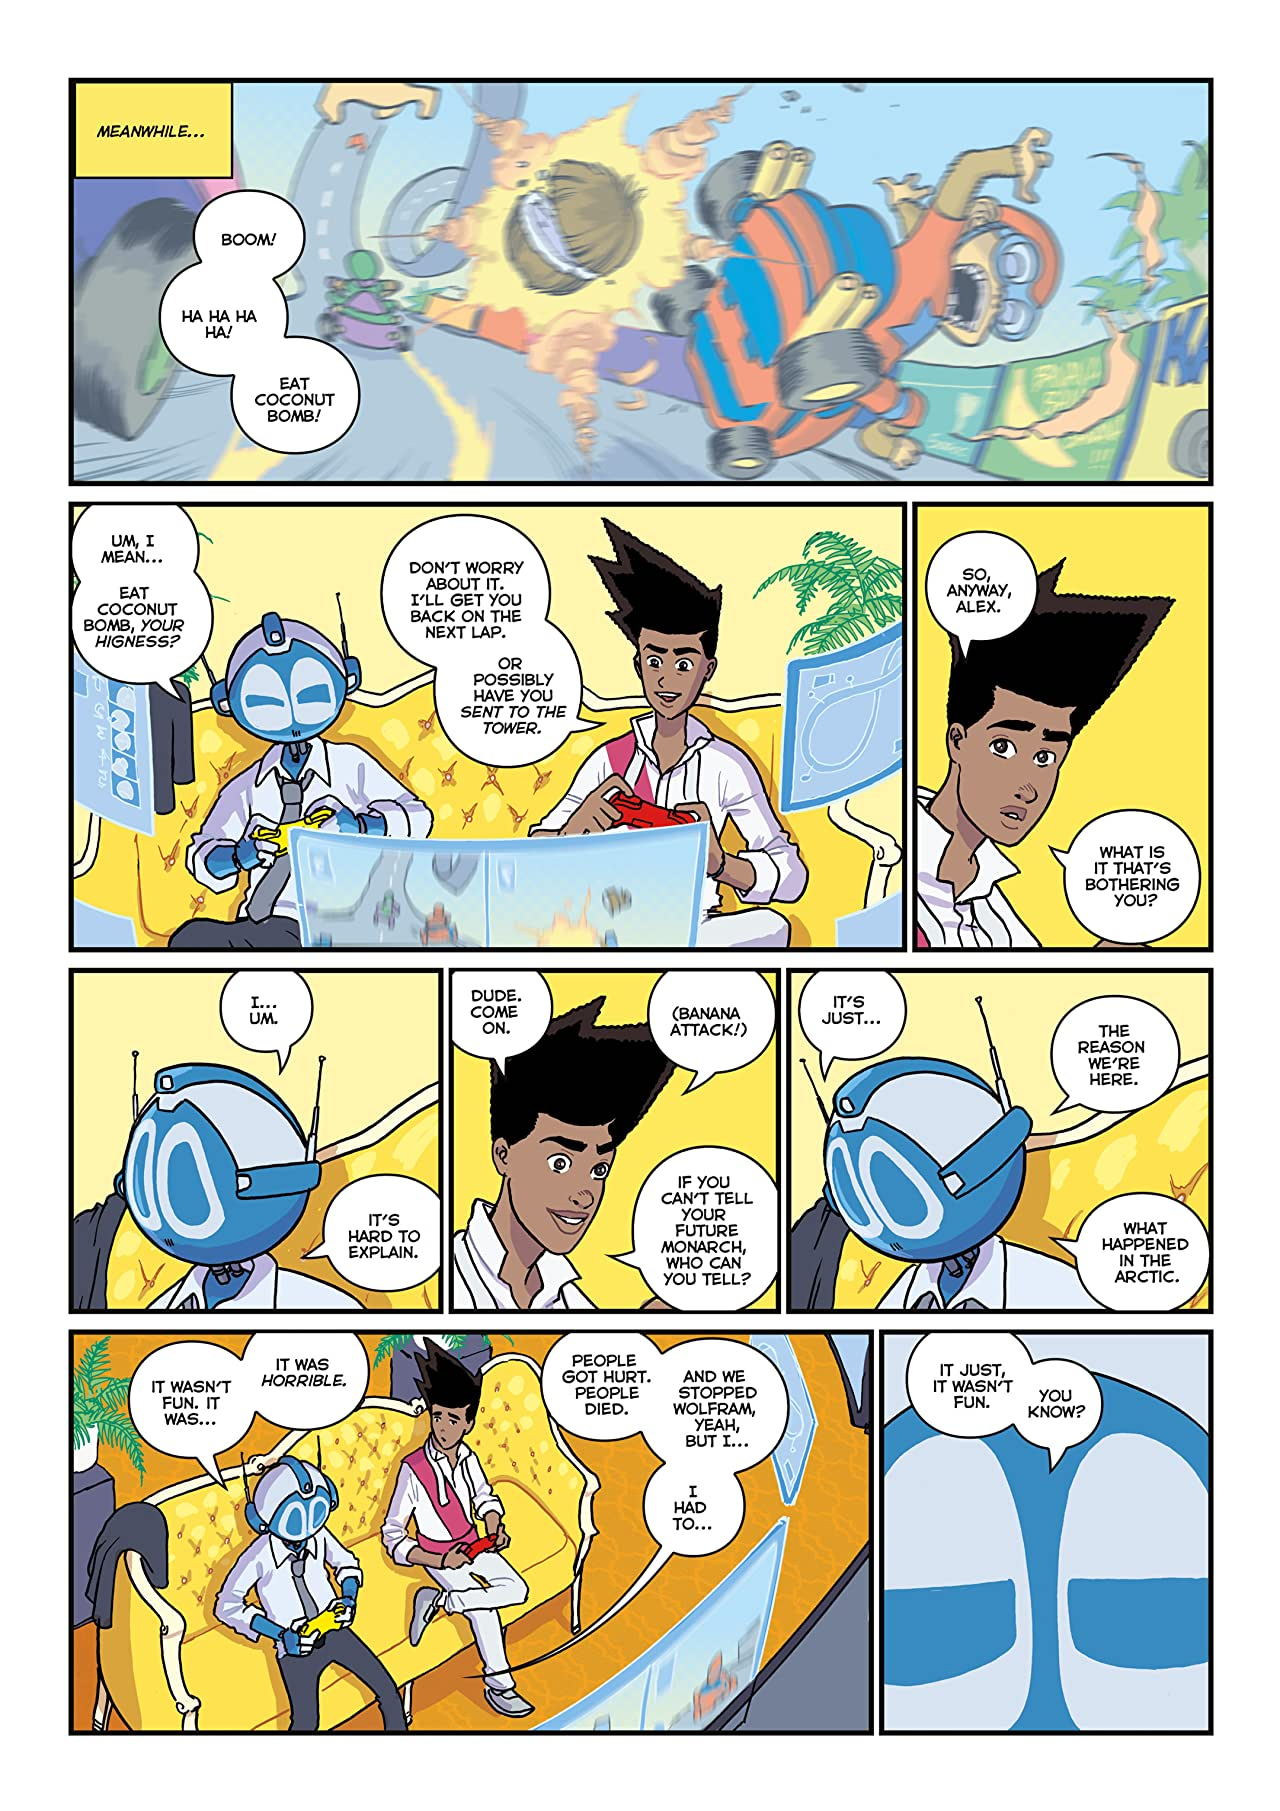 The Phoenix #336: The Weekly Story Comic